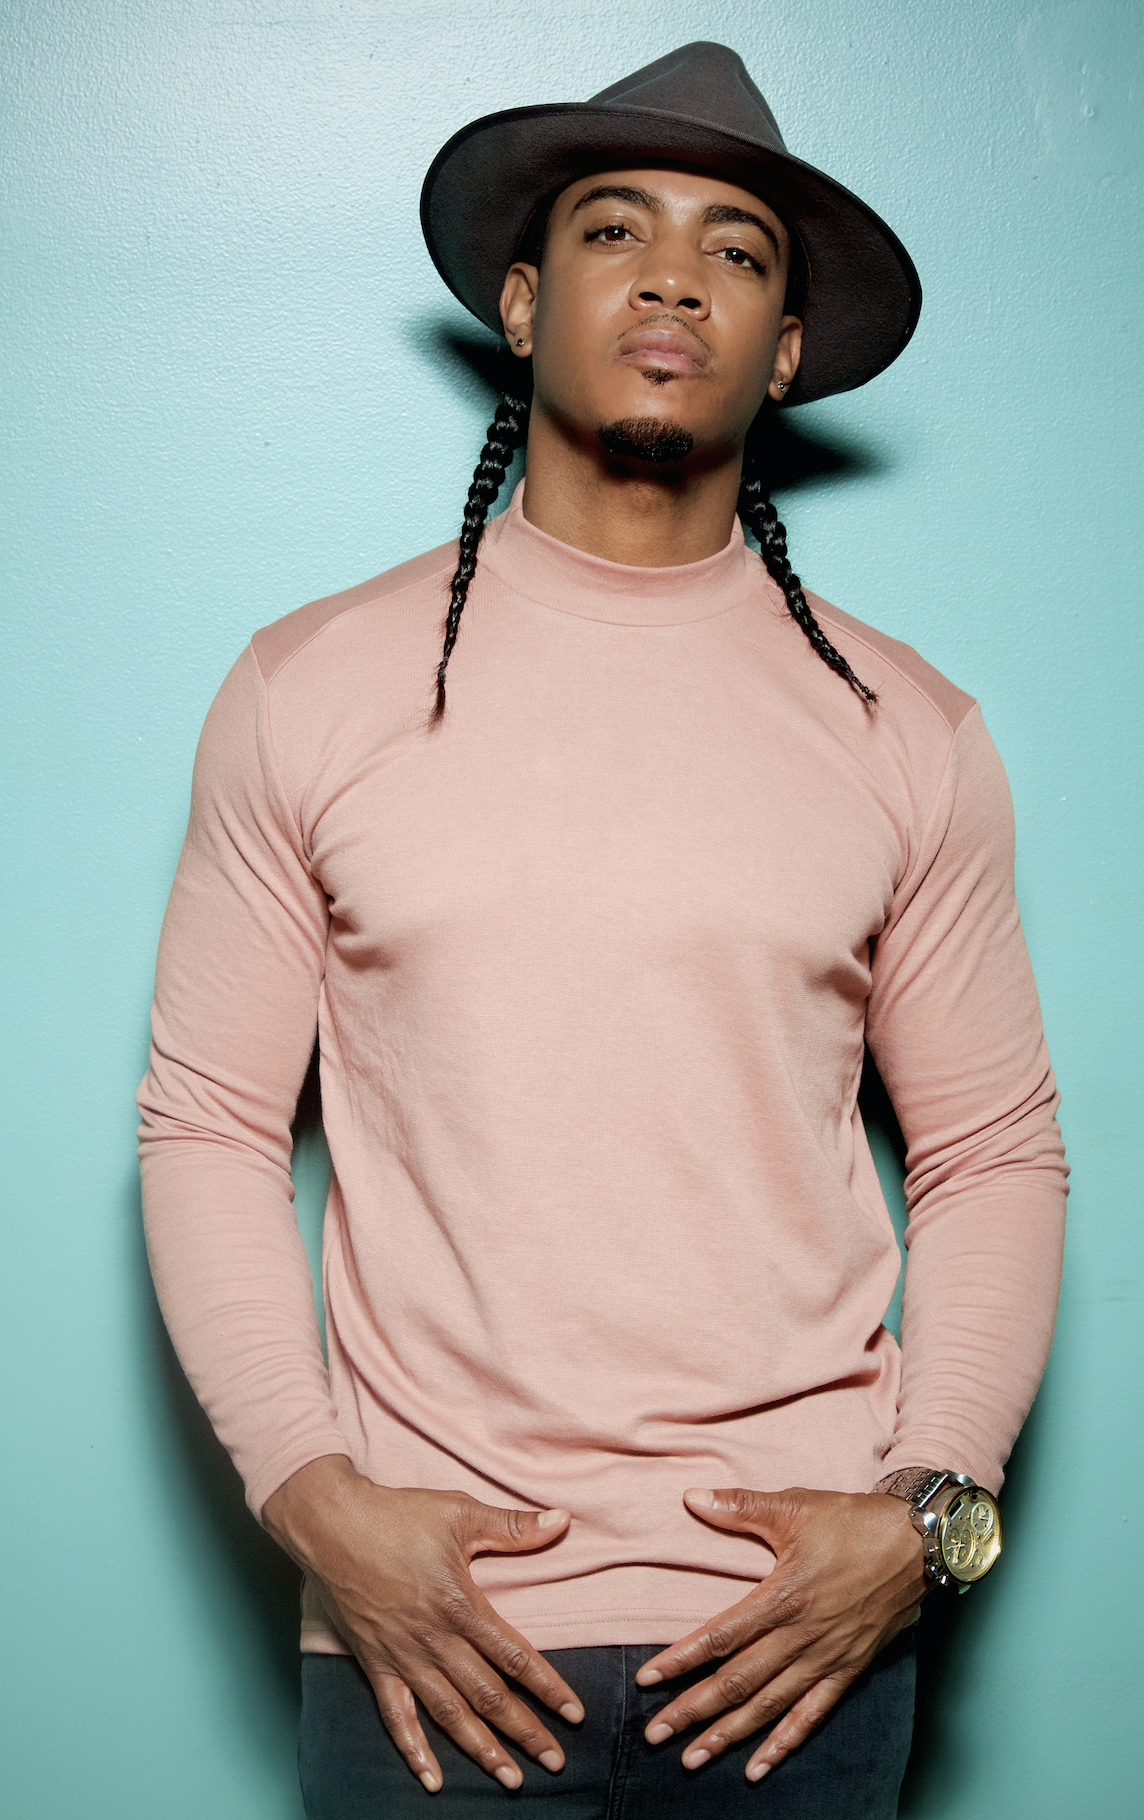 """Music News: Rudy Currence's New Single, """"I Belong Here"""" Available this Friday"""